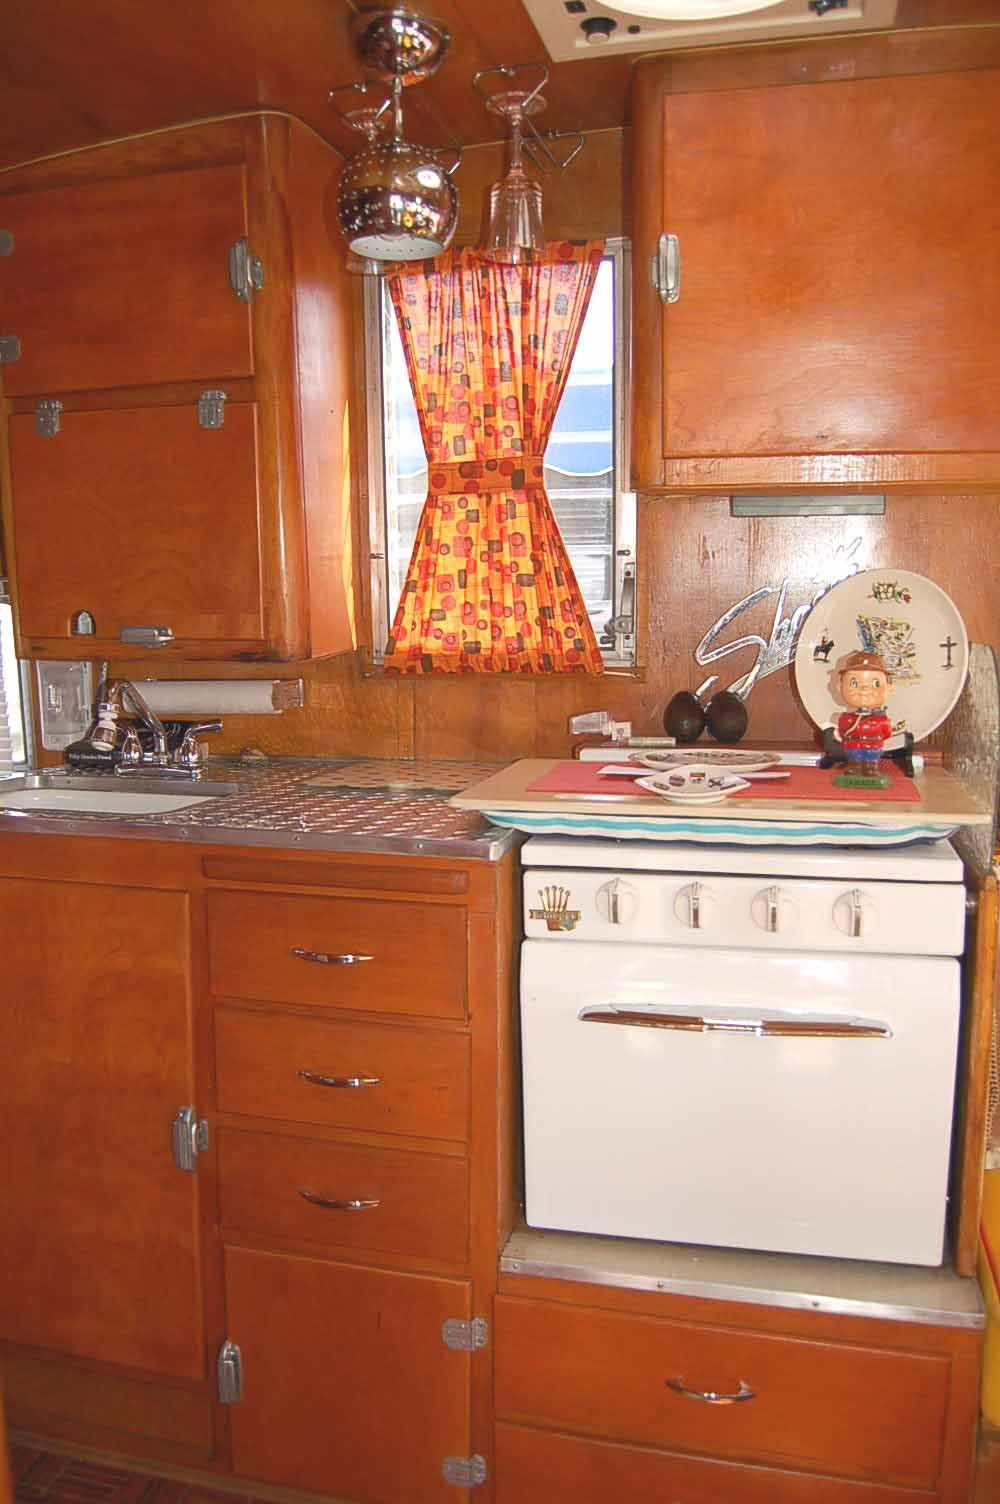 Picture of un-restored kitchen cabinets in 1955 Shasta Trailer ... on 1955 kitchen appliances, 1955 kitchen trim, refinishing oak cabinets, 1955 kitchen tiles, 1955 kitchen antiques, 1955 kitchen makeover, 1955 kitchen wallpaper, 1955 kitchen tables, 1955 kitchen stoves,